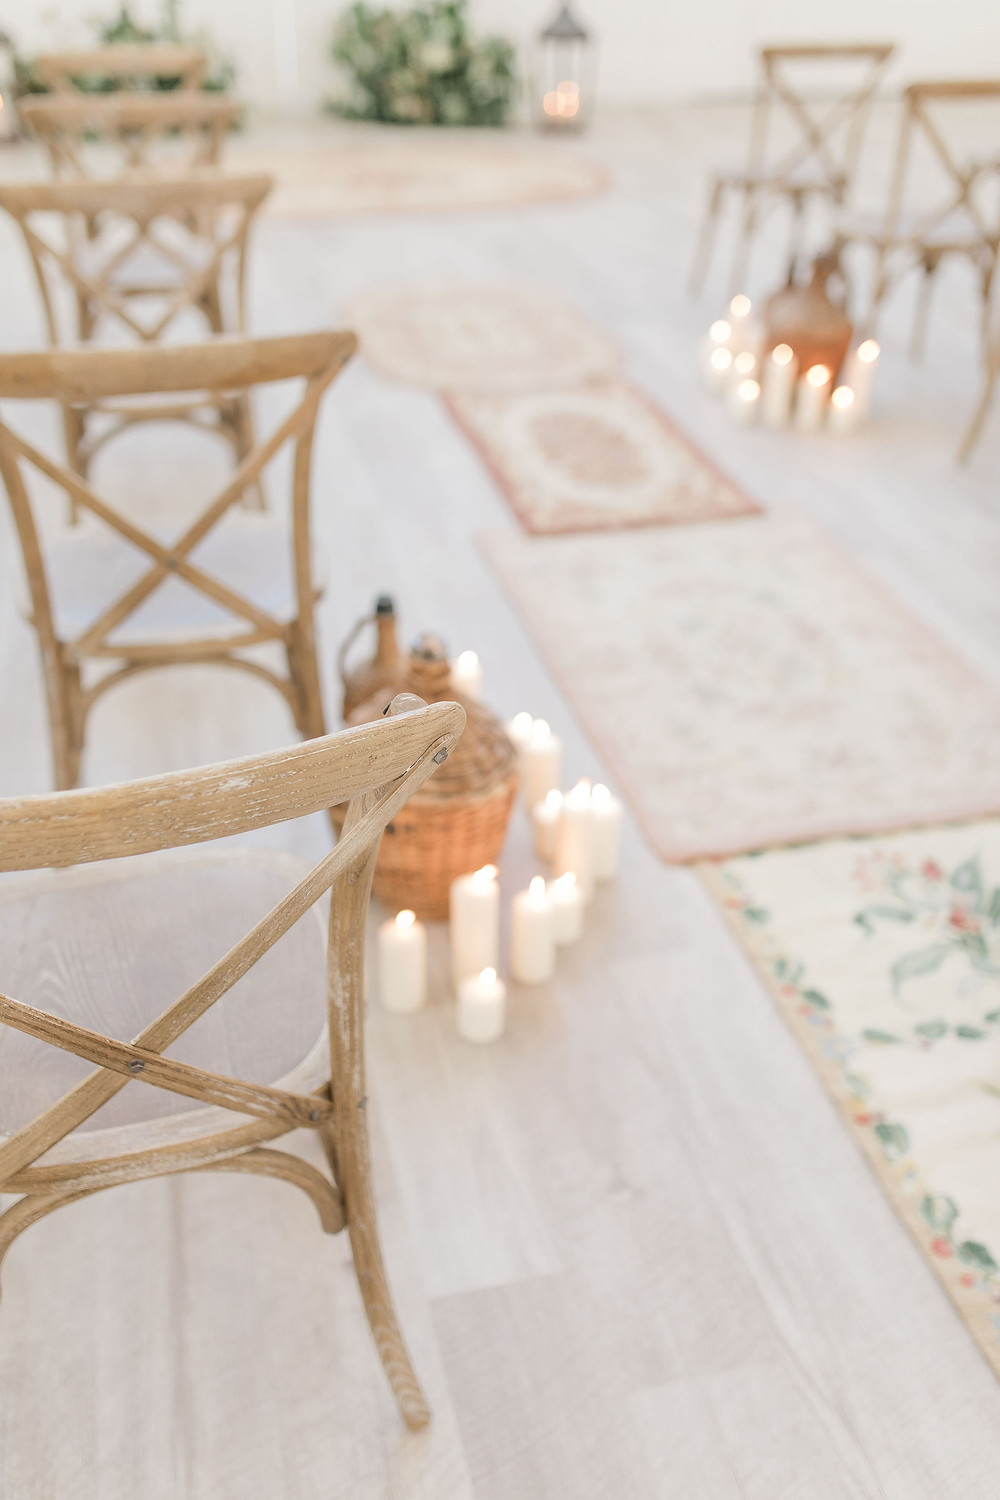 Vintage demijohns and candles are a nod to the vineyard wedding venue